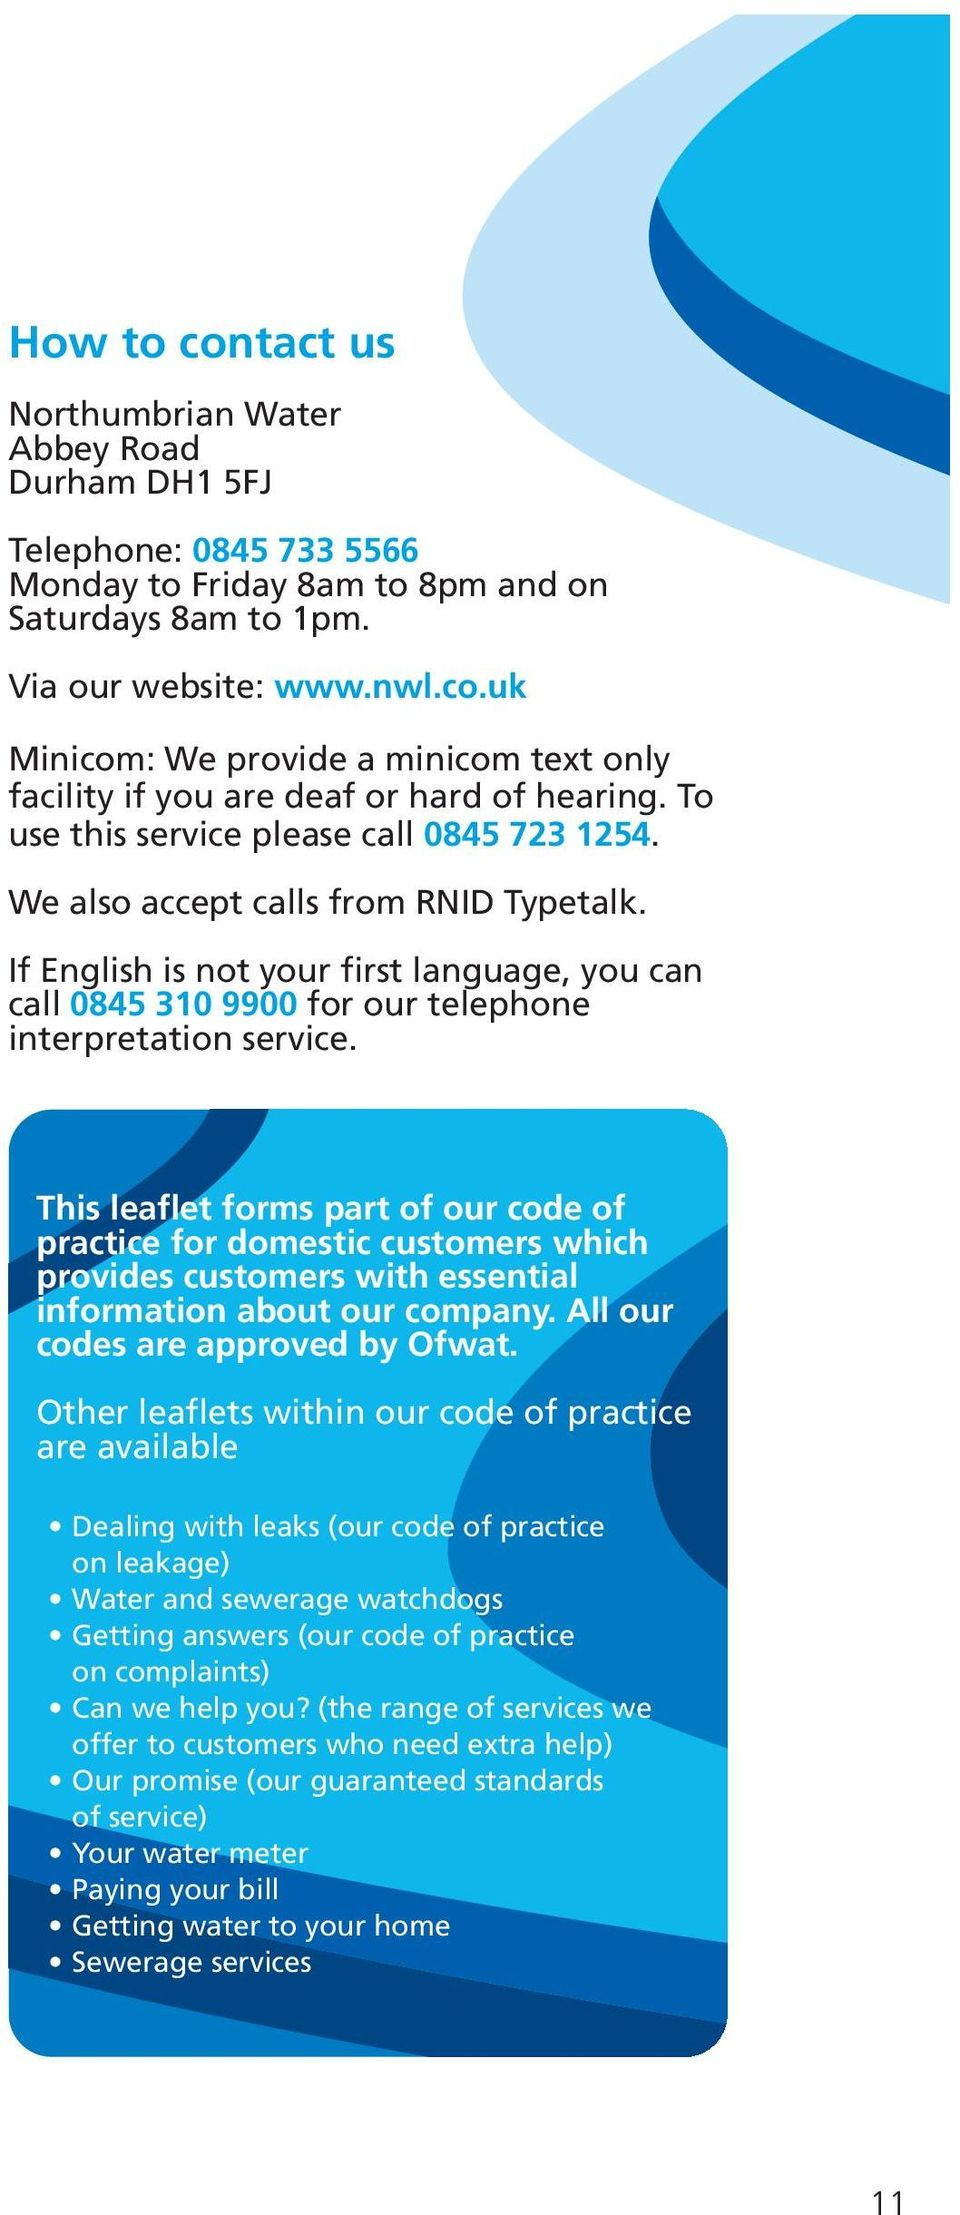 This leaflet forms part of our code of practice for domestic customers which provides customers with essential information about our company. All our codes are approved by Ofwat.